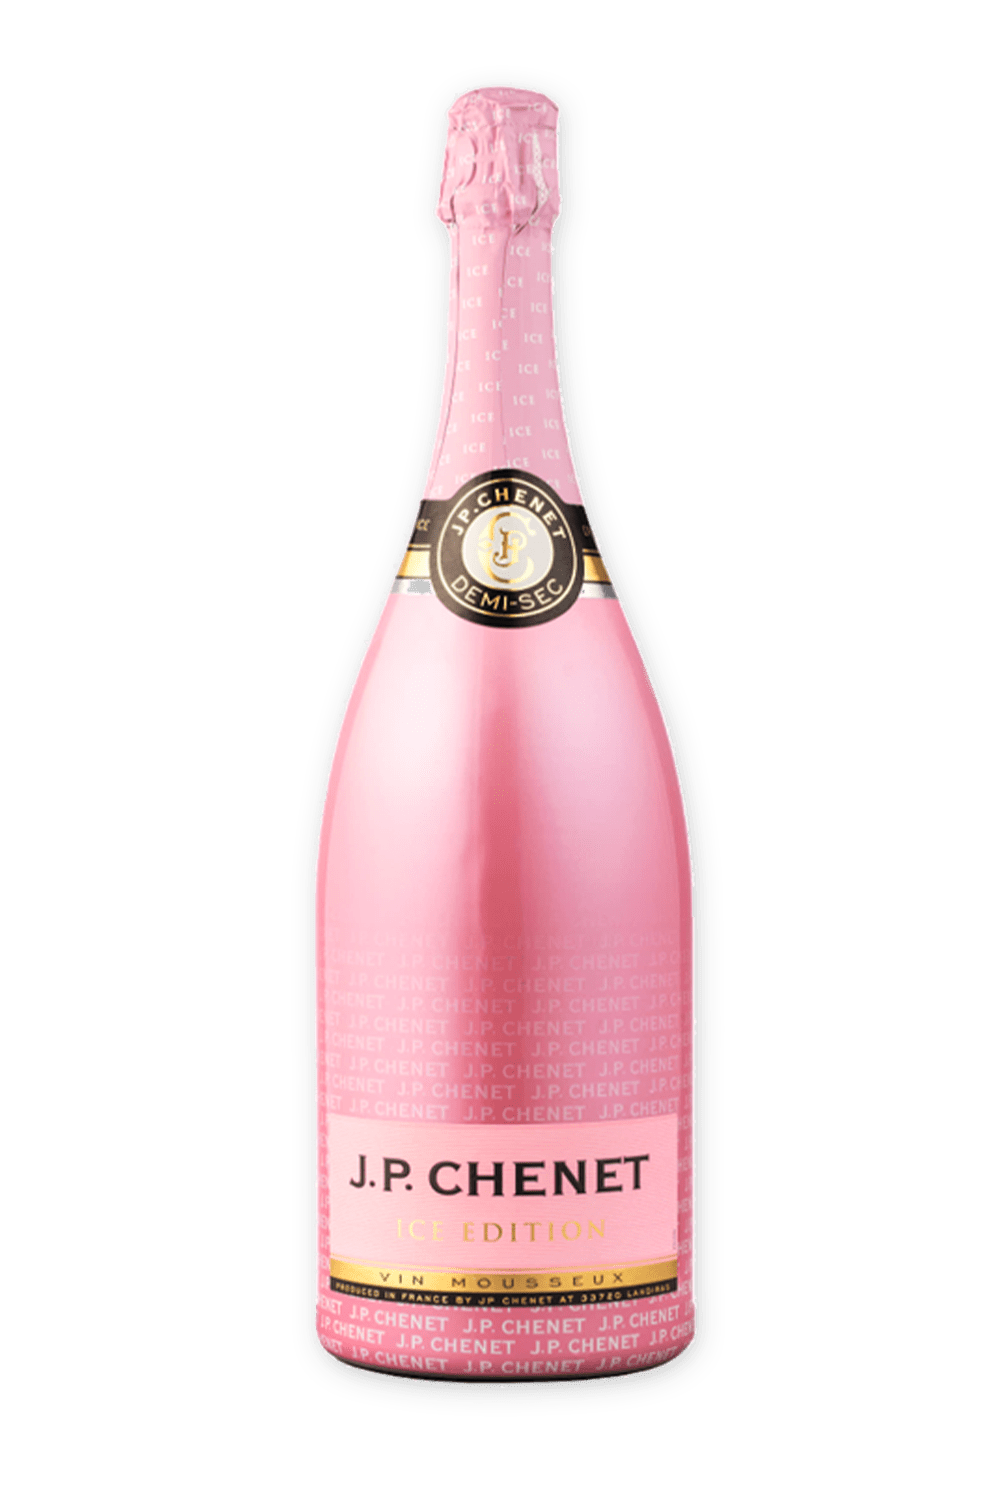 Jp.-Chenet-Ice-Edition-Demi-Sec-Rose--1500Ml-